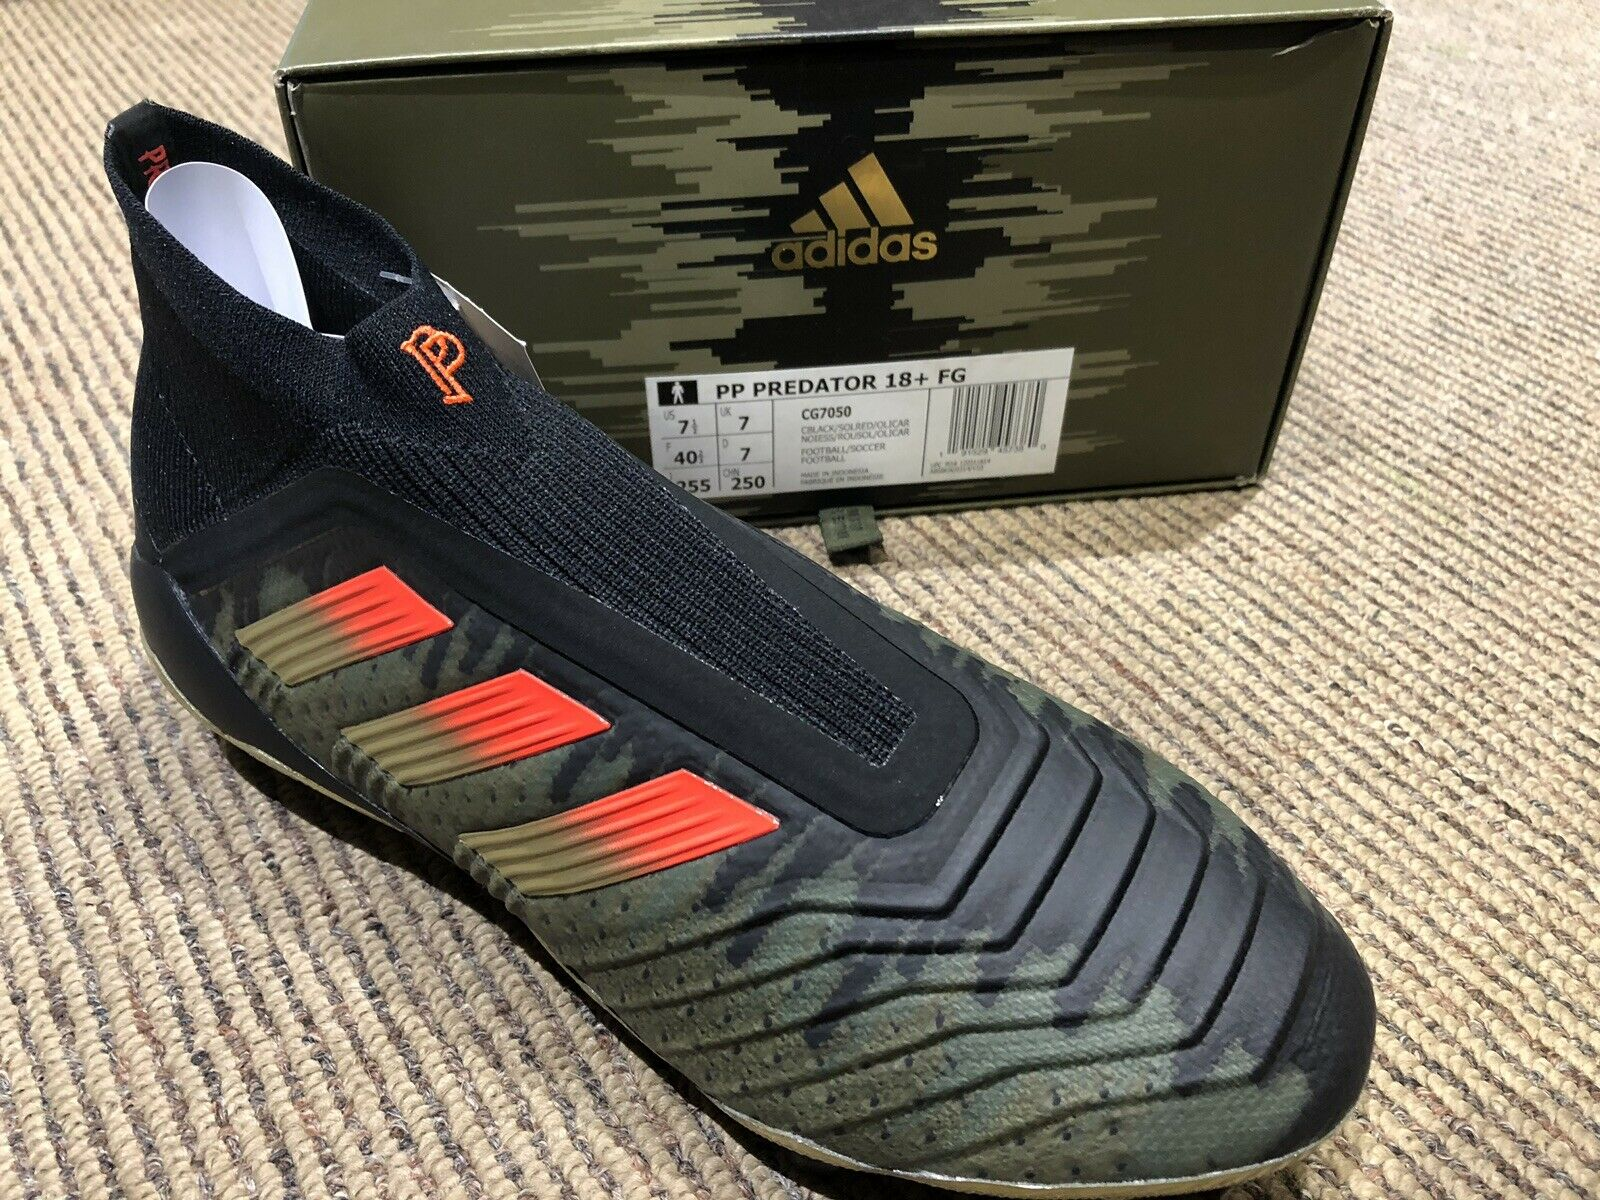 Adidas Prossoator 18 FG Paul Pogba Firm Ground Cleats CG7050 Limited Dimensione 7.5 US